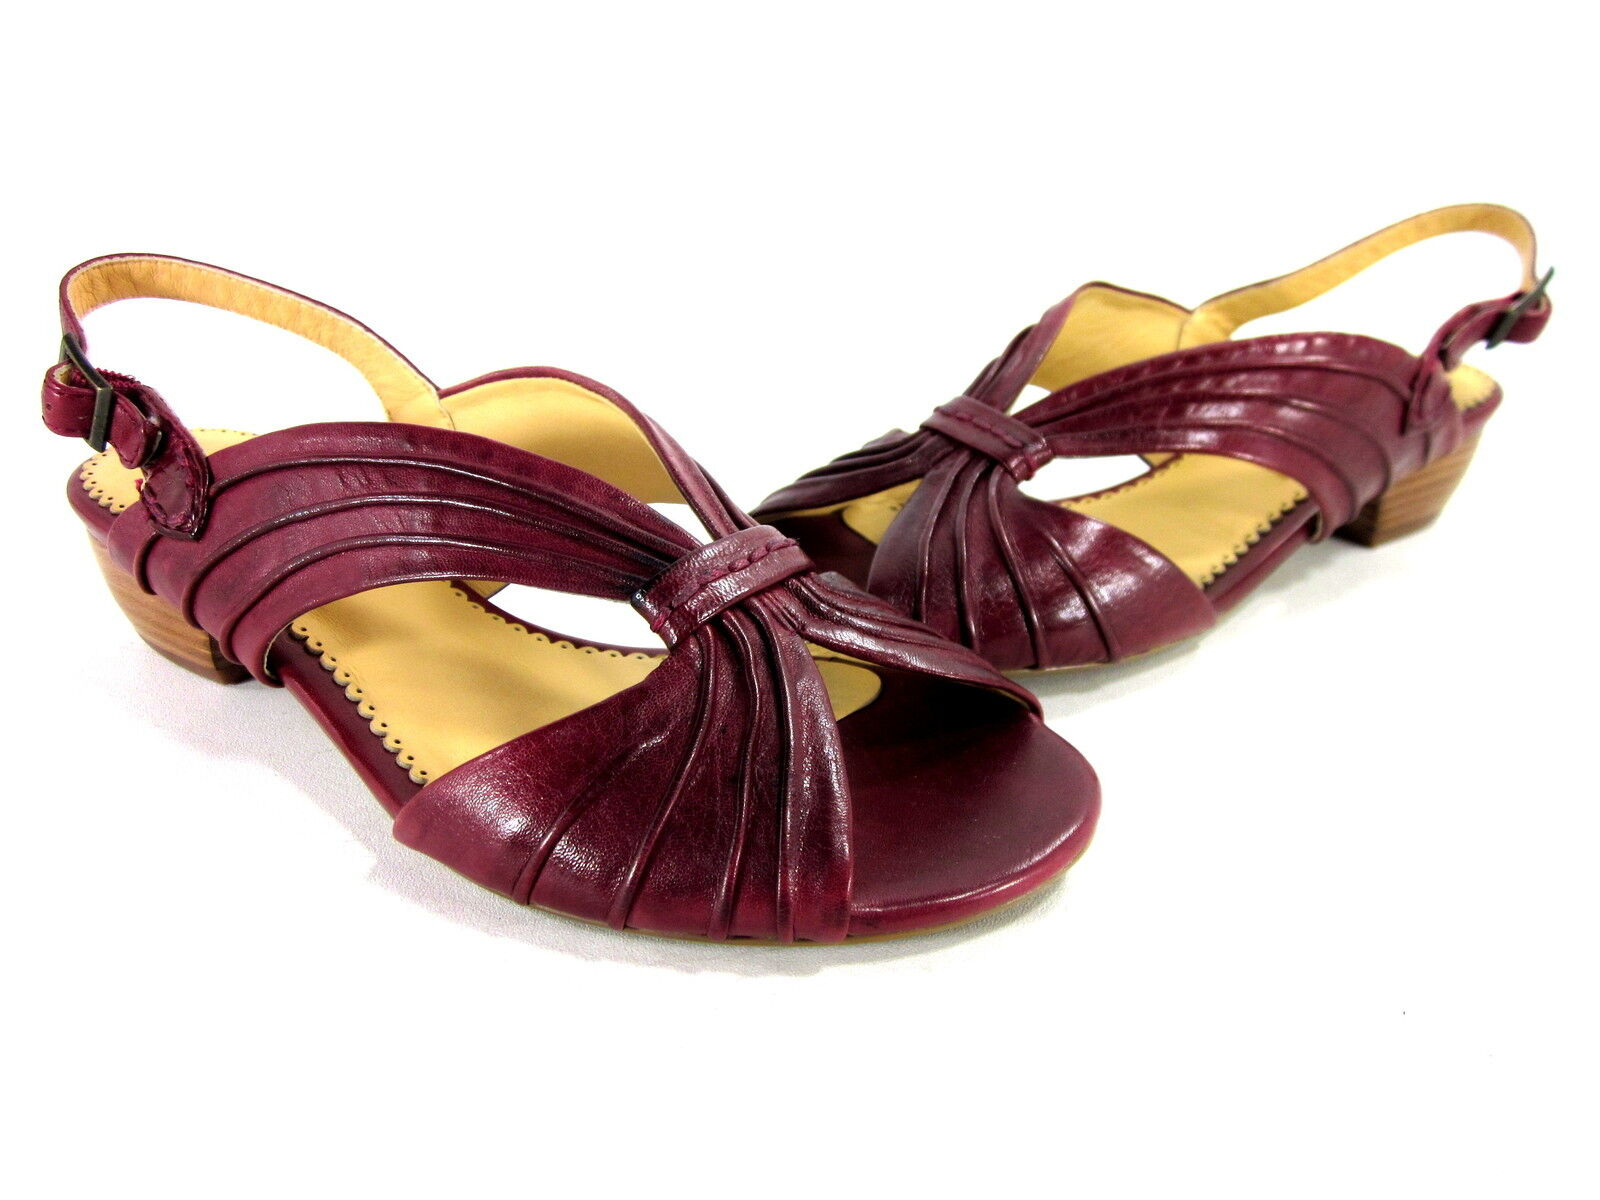 EVERYBODY MADRONE WOMEN'S SLINGBACK SANDAL ROT 37 LEATHER EUR SIZE 37 ROT US 7 MEDIUM 7fa786